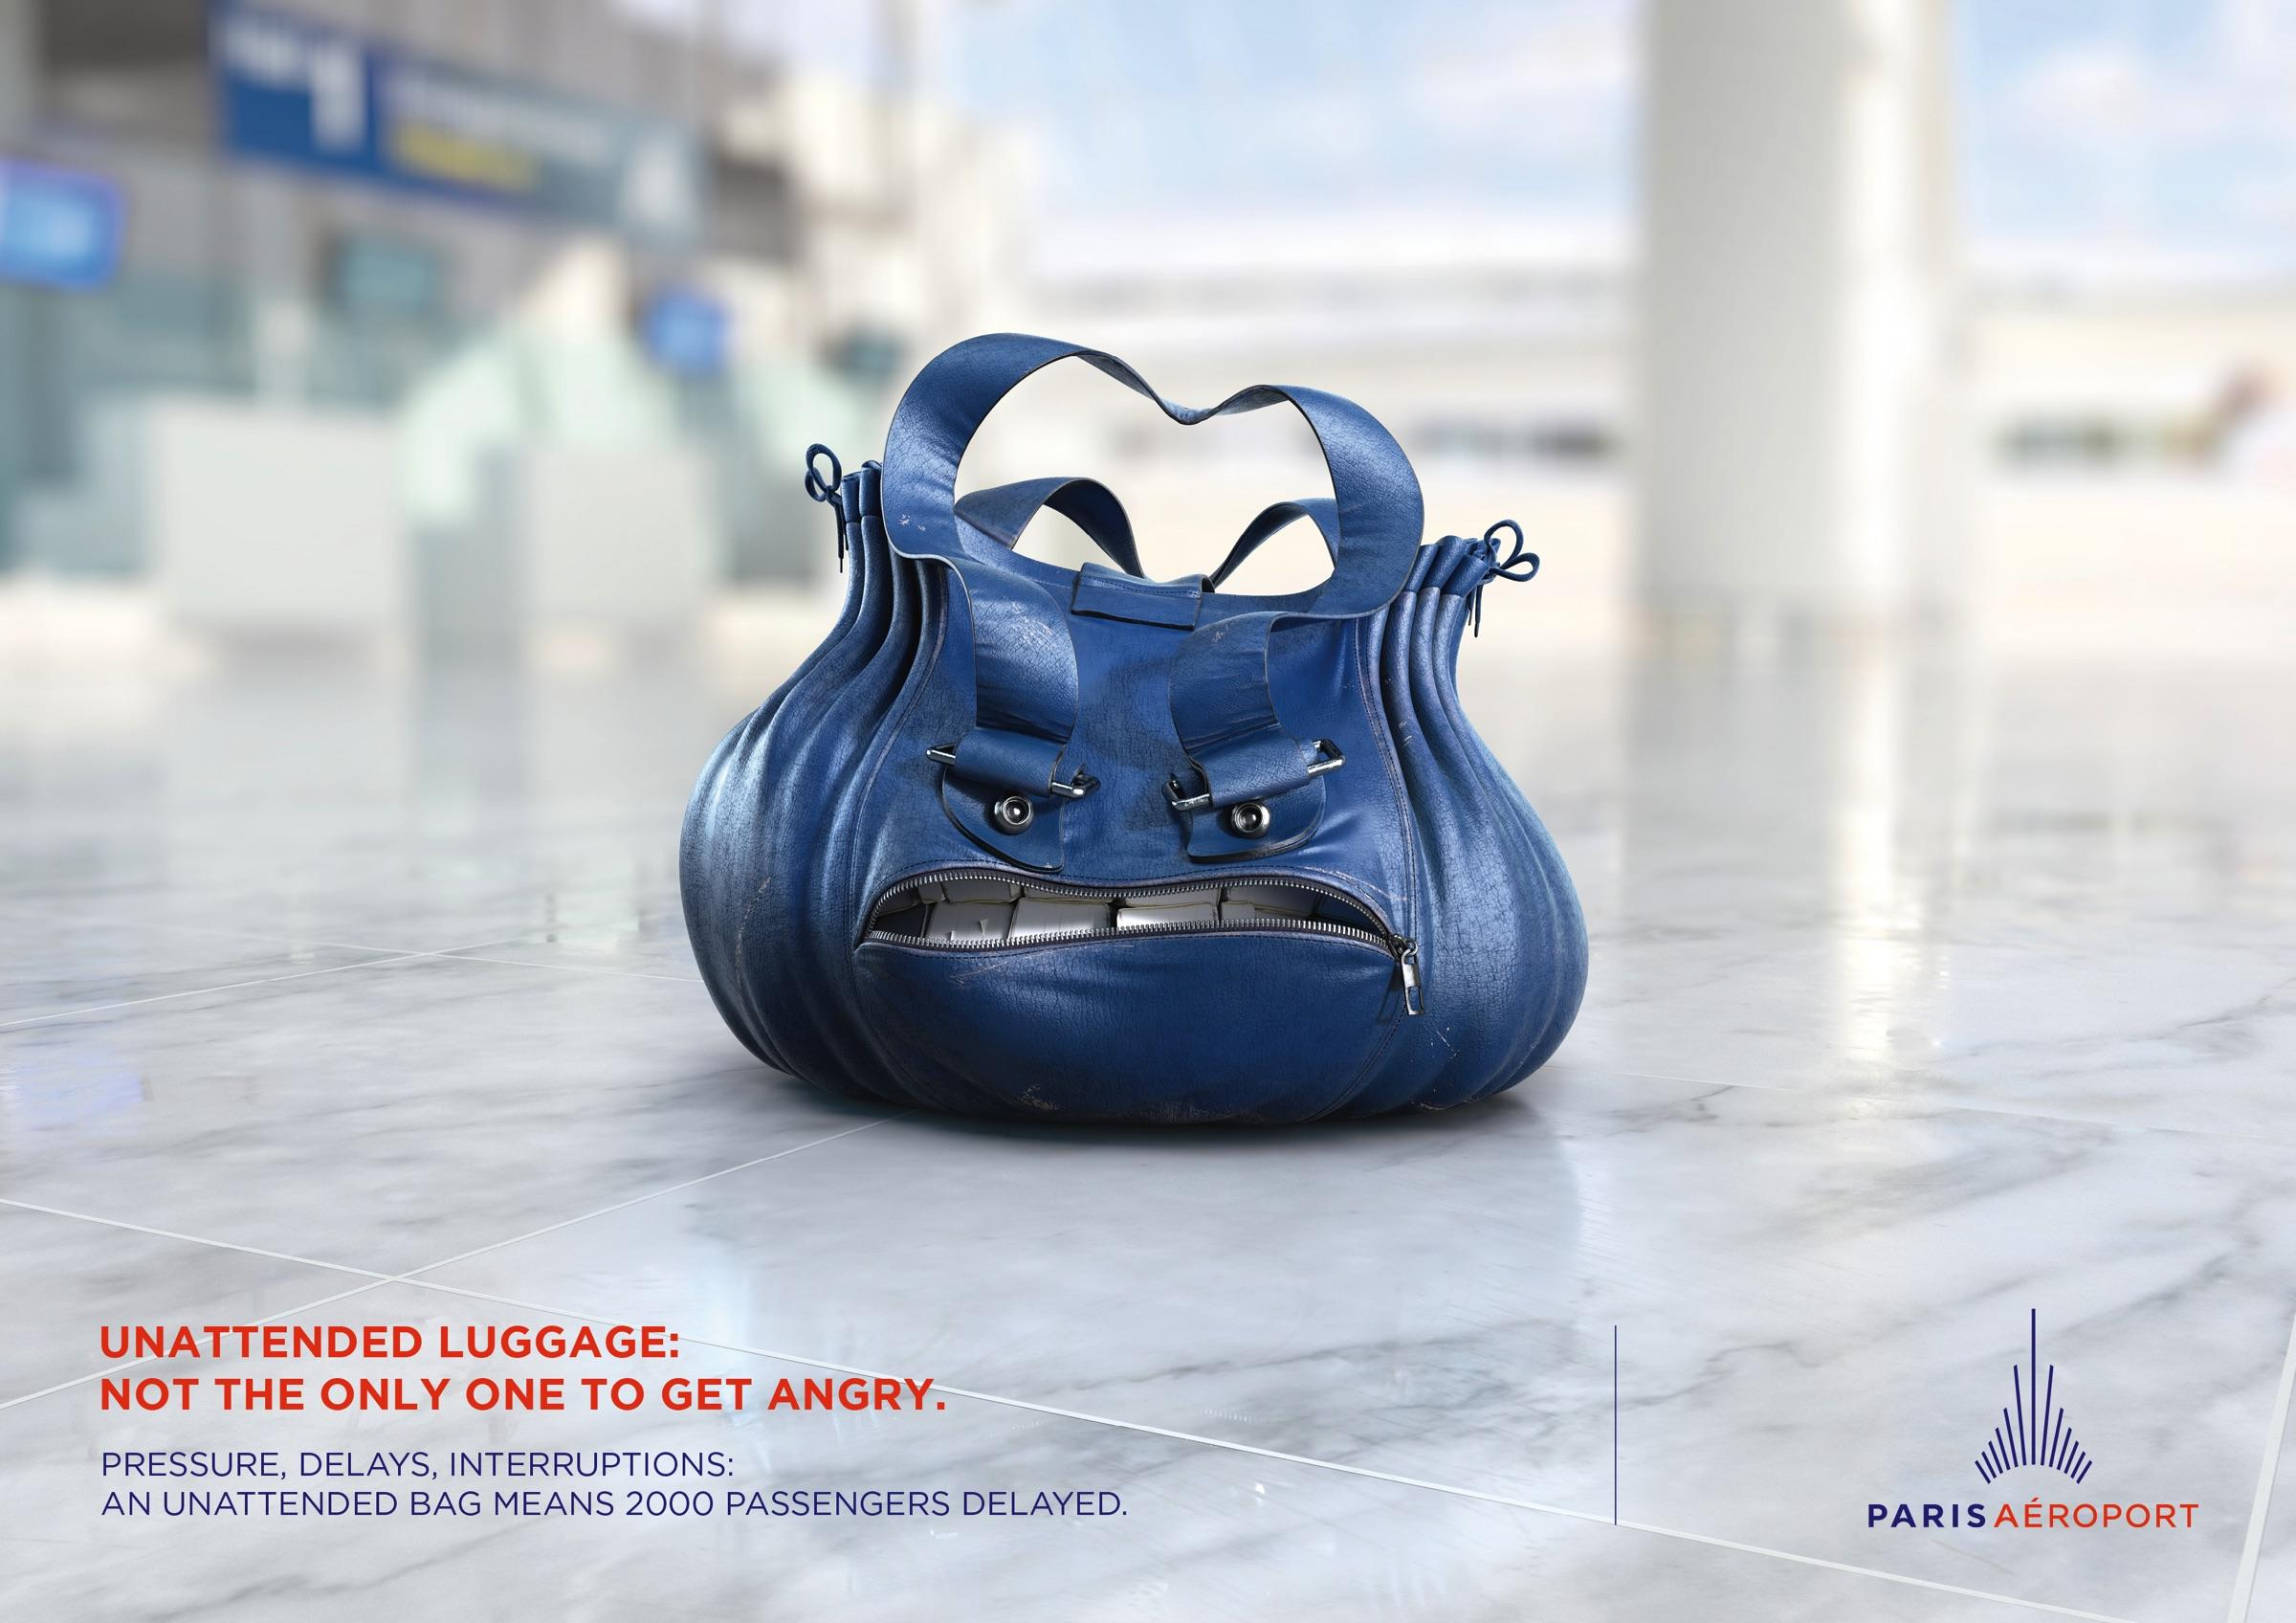 Paris Aéroport Outdoor Ad - Angry Bags, 1